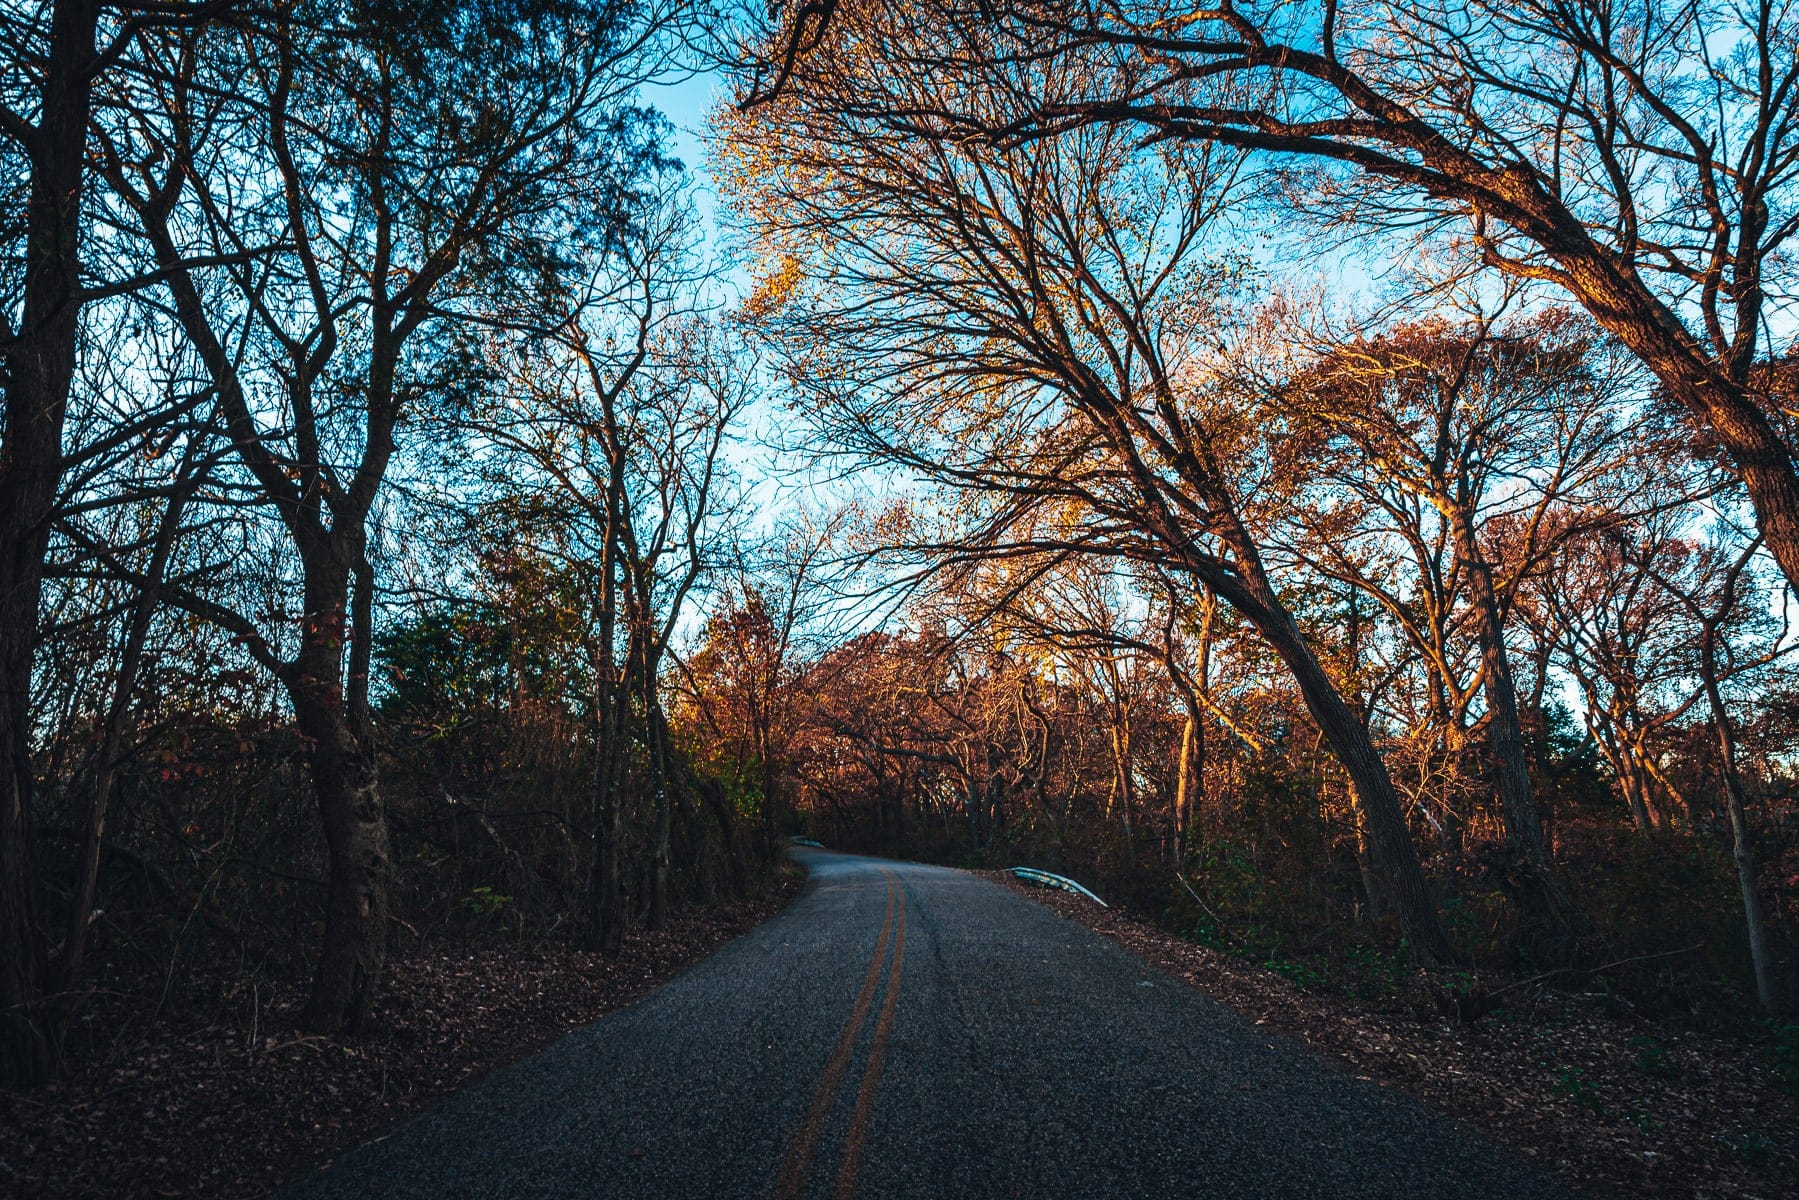 Trees along a country road near McKinney, Texas.